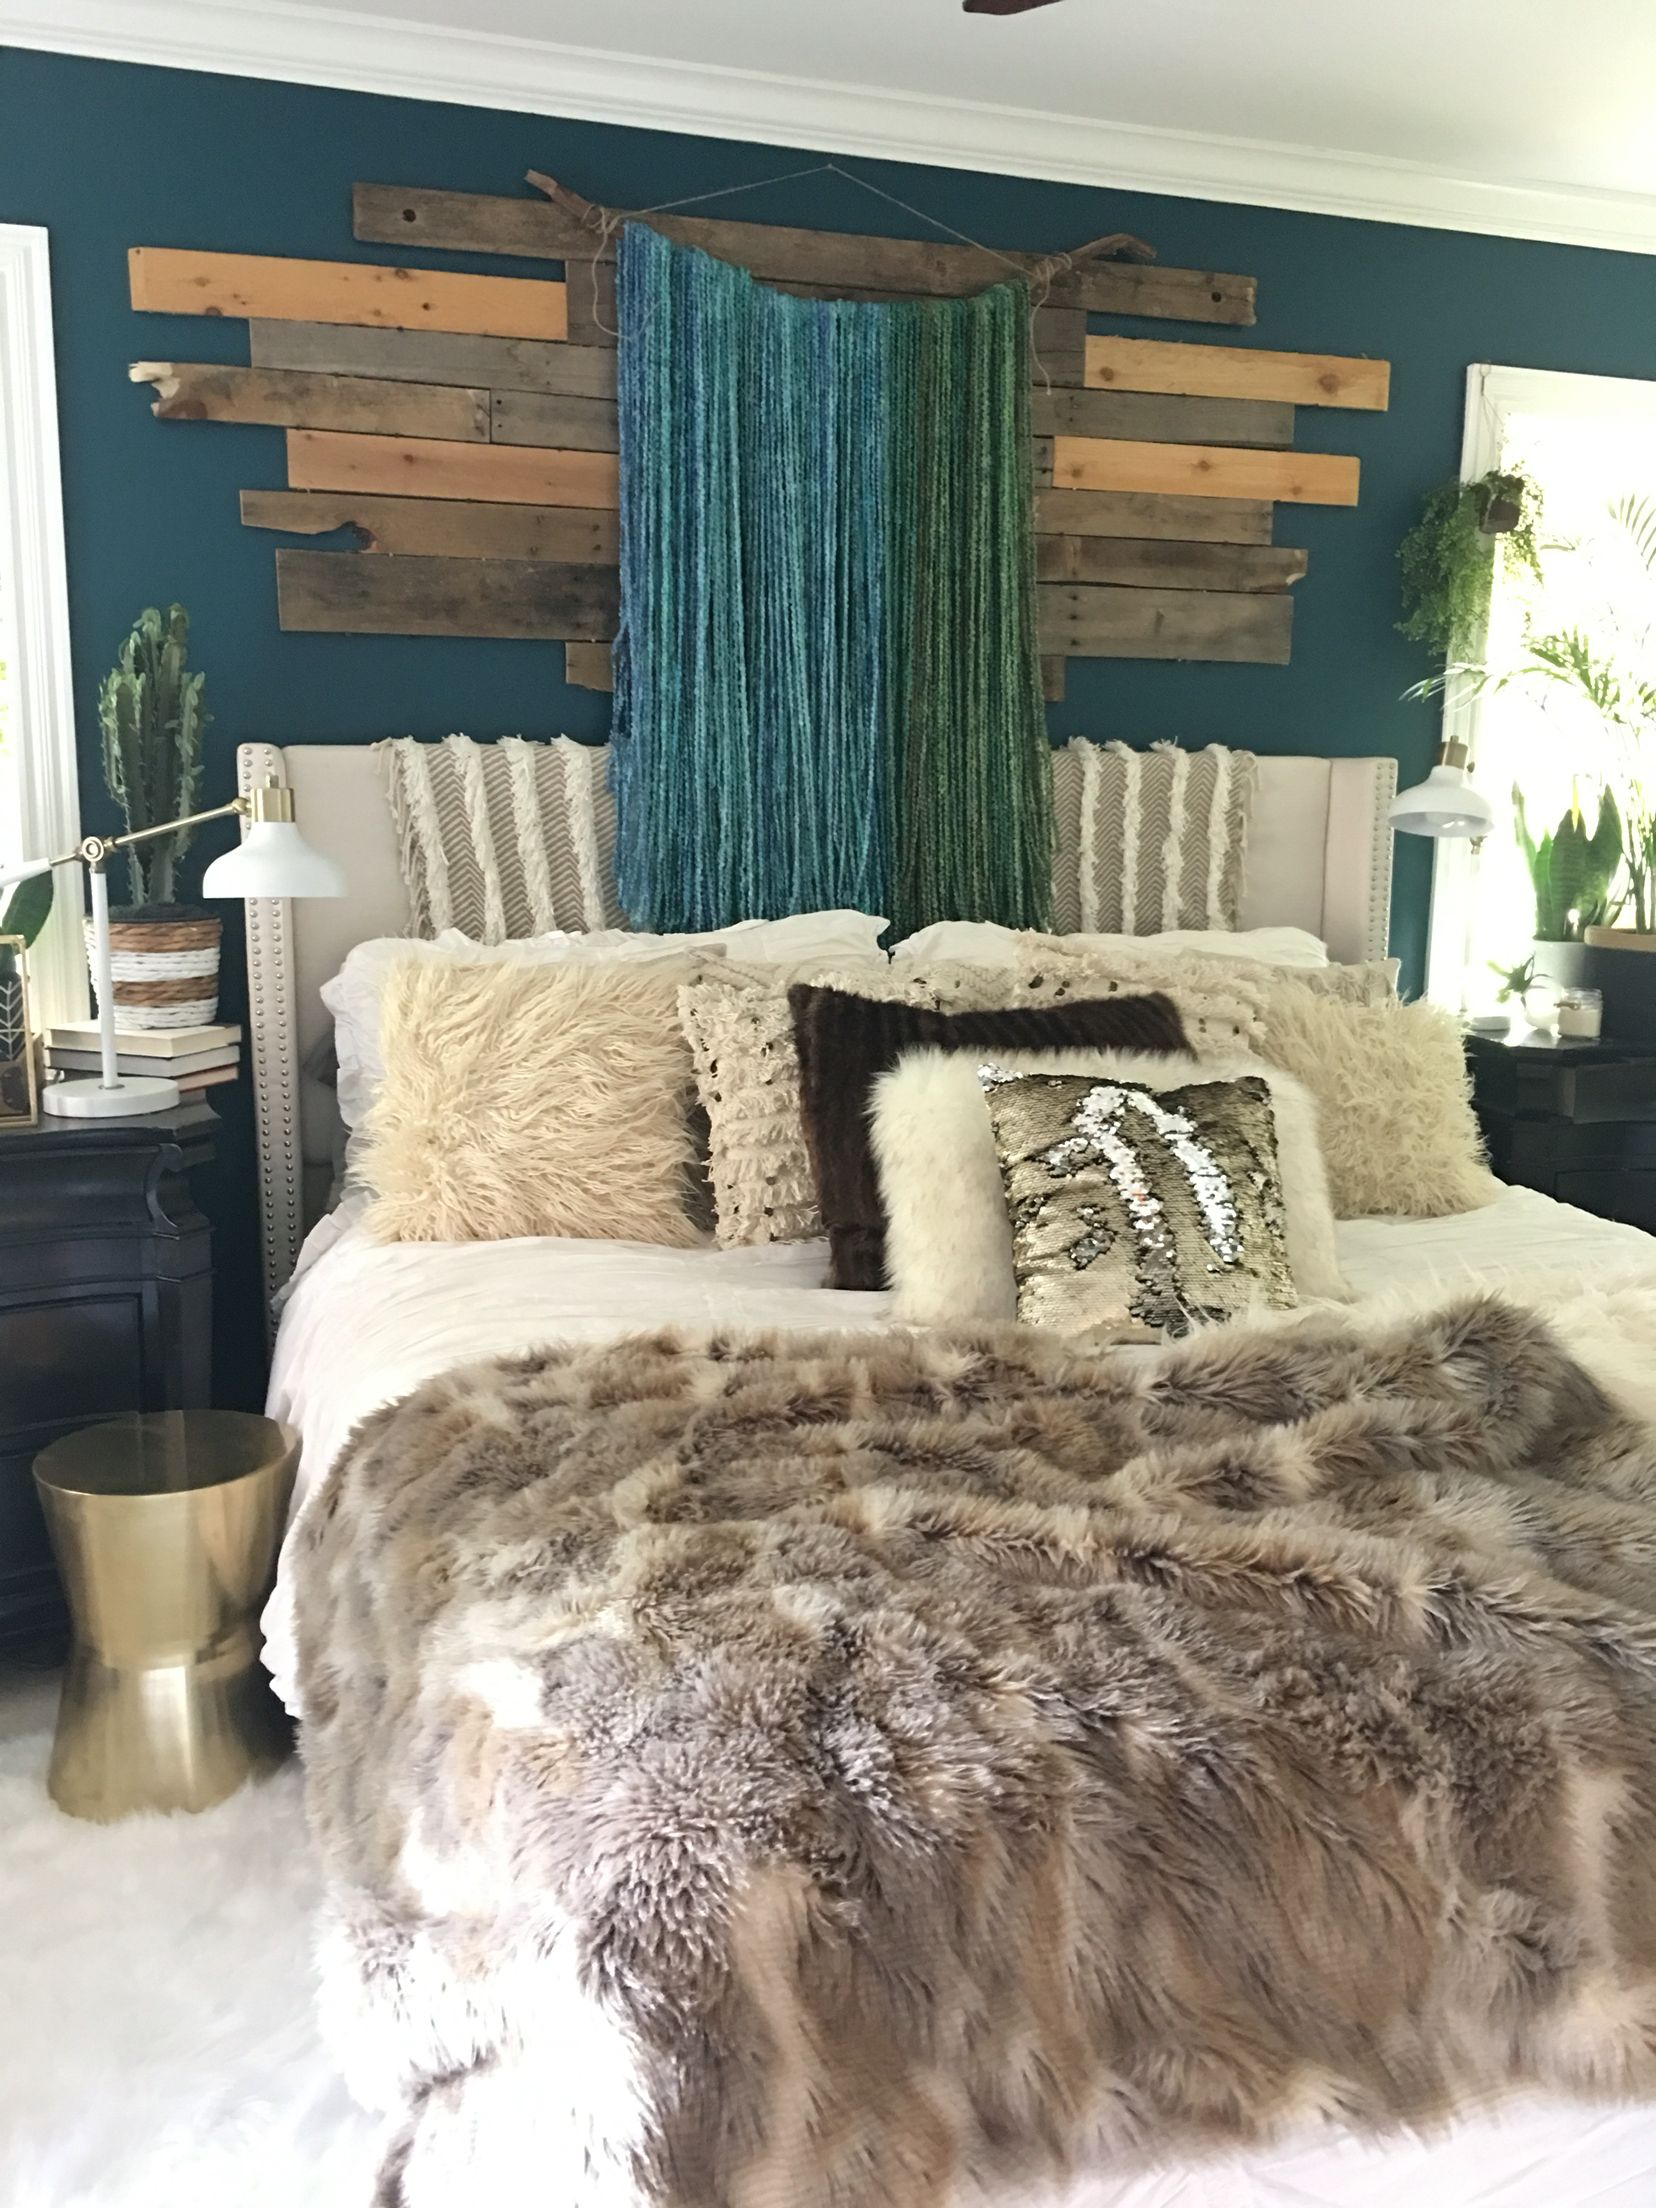 Boho Glam Bedroom by Blissfully Eclectic  Ocean Abyss